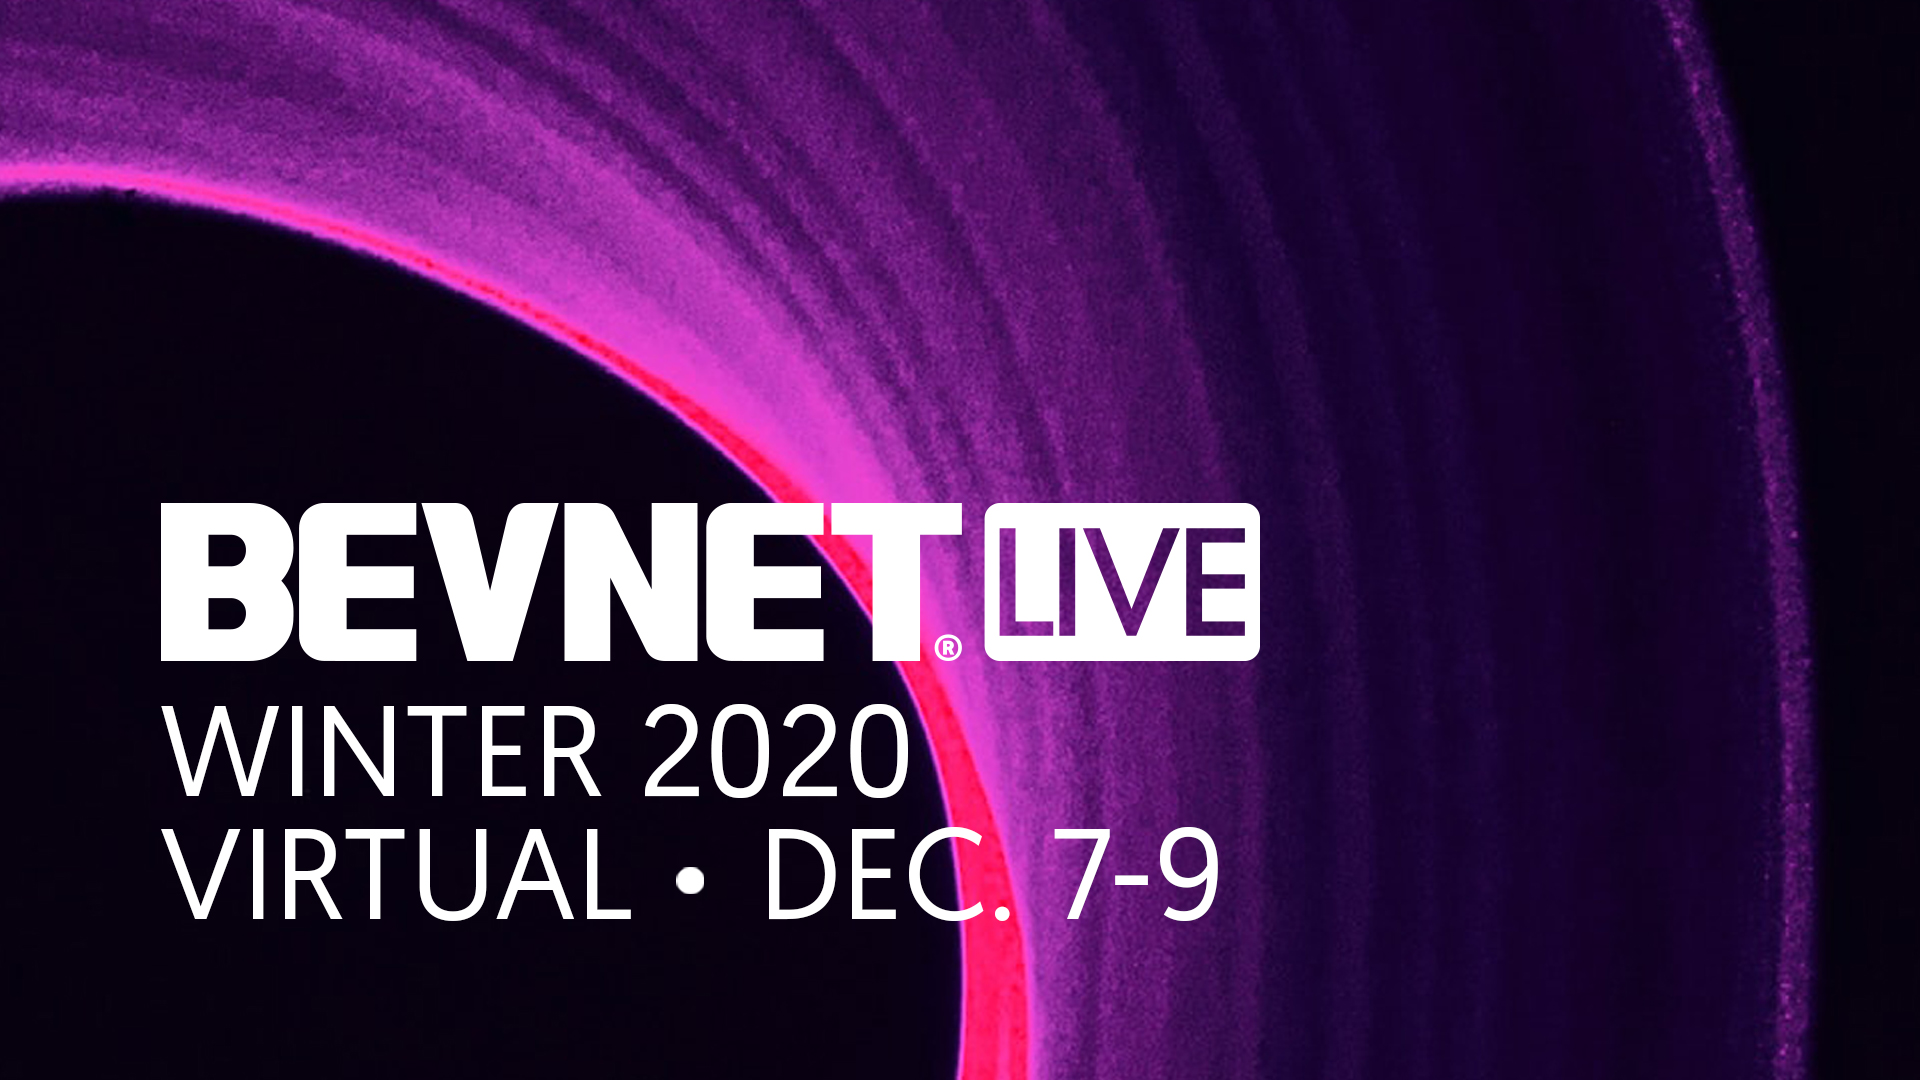 BEVNET.Live Winter 2020